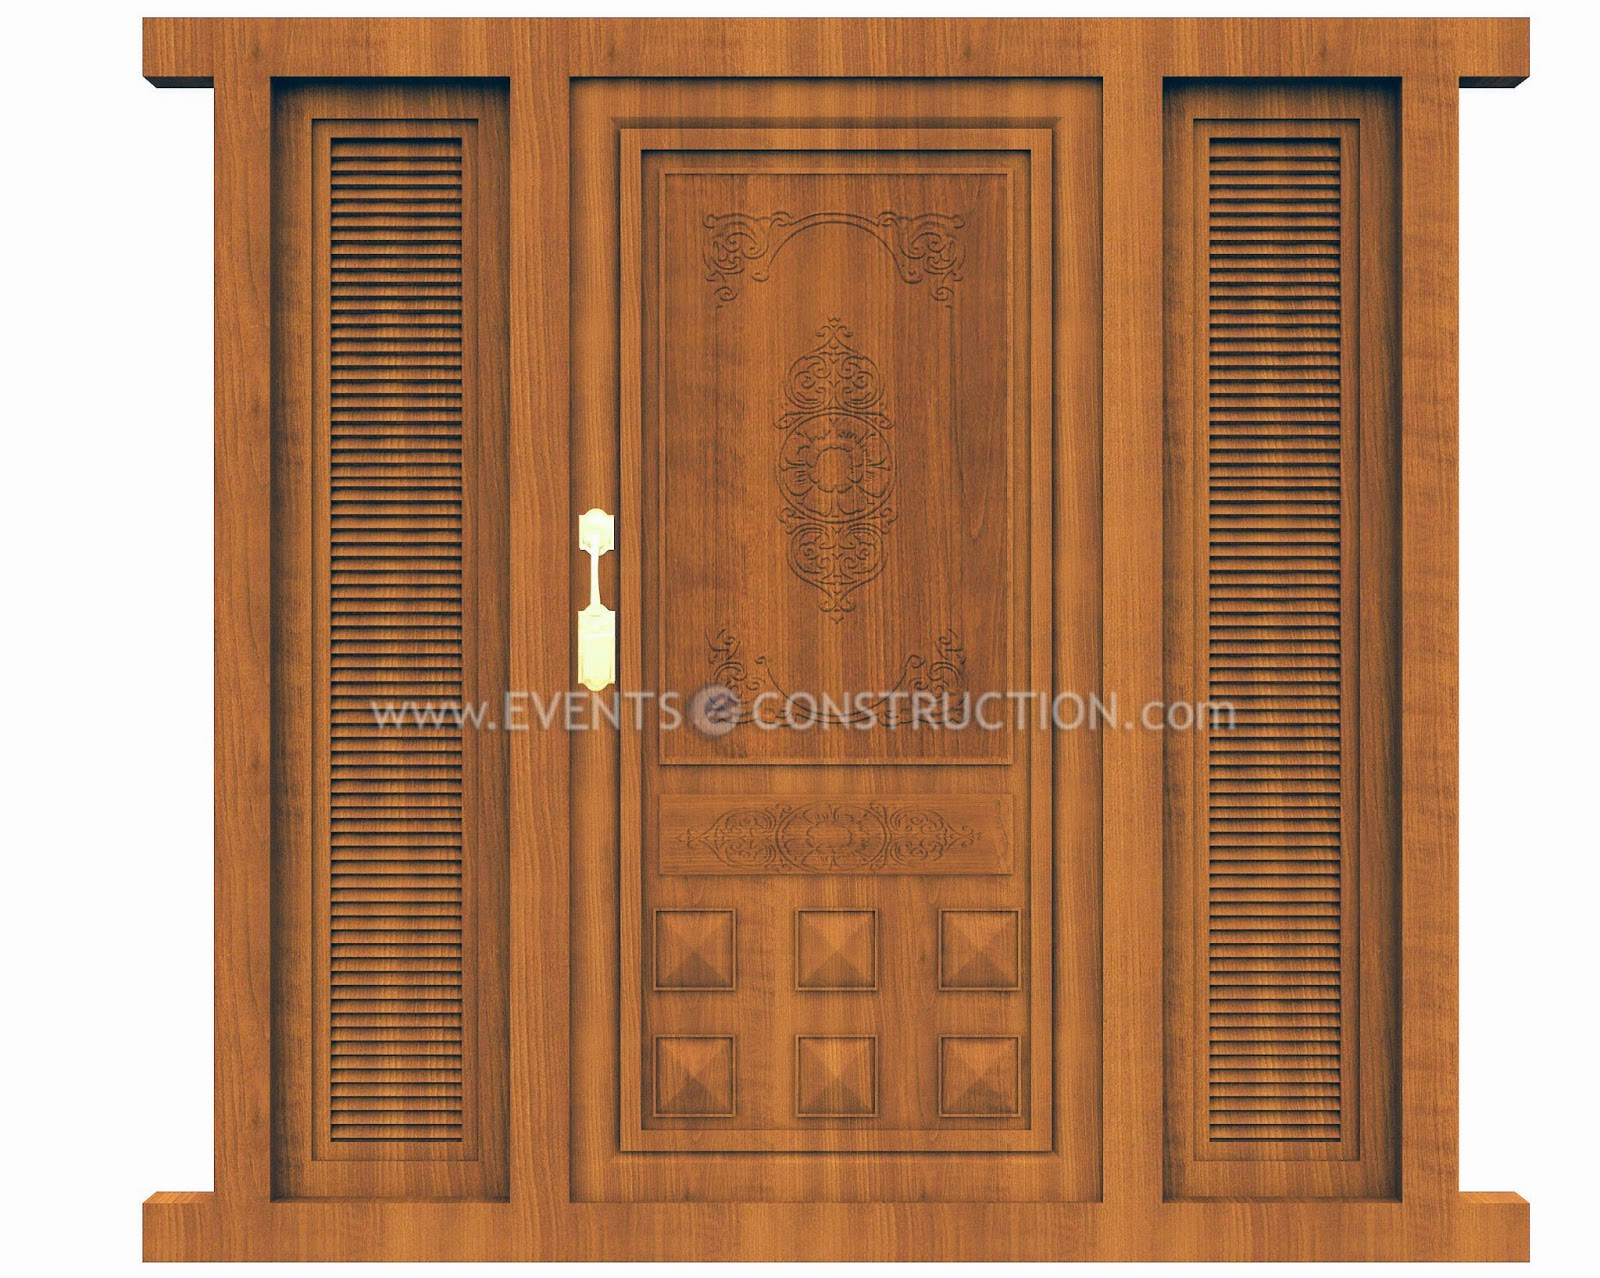 Evens construction pvt ltd wooden main door design Main door wooden design